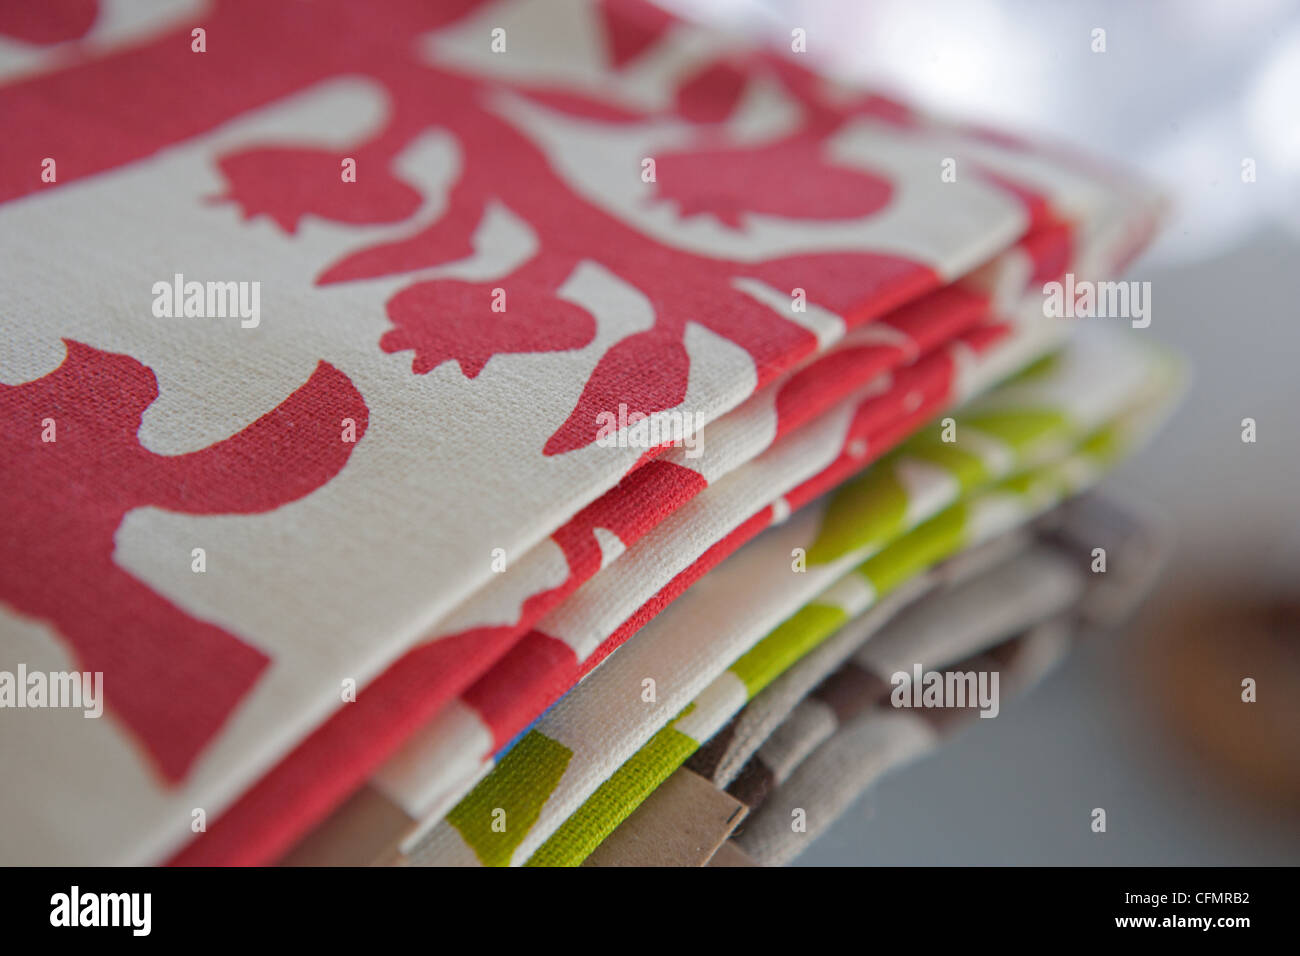 Pile of handmade silkscreen textile dish cloth in bright colors. - Stock Image